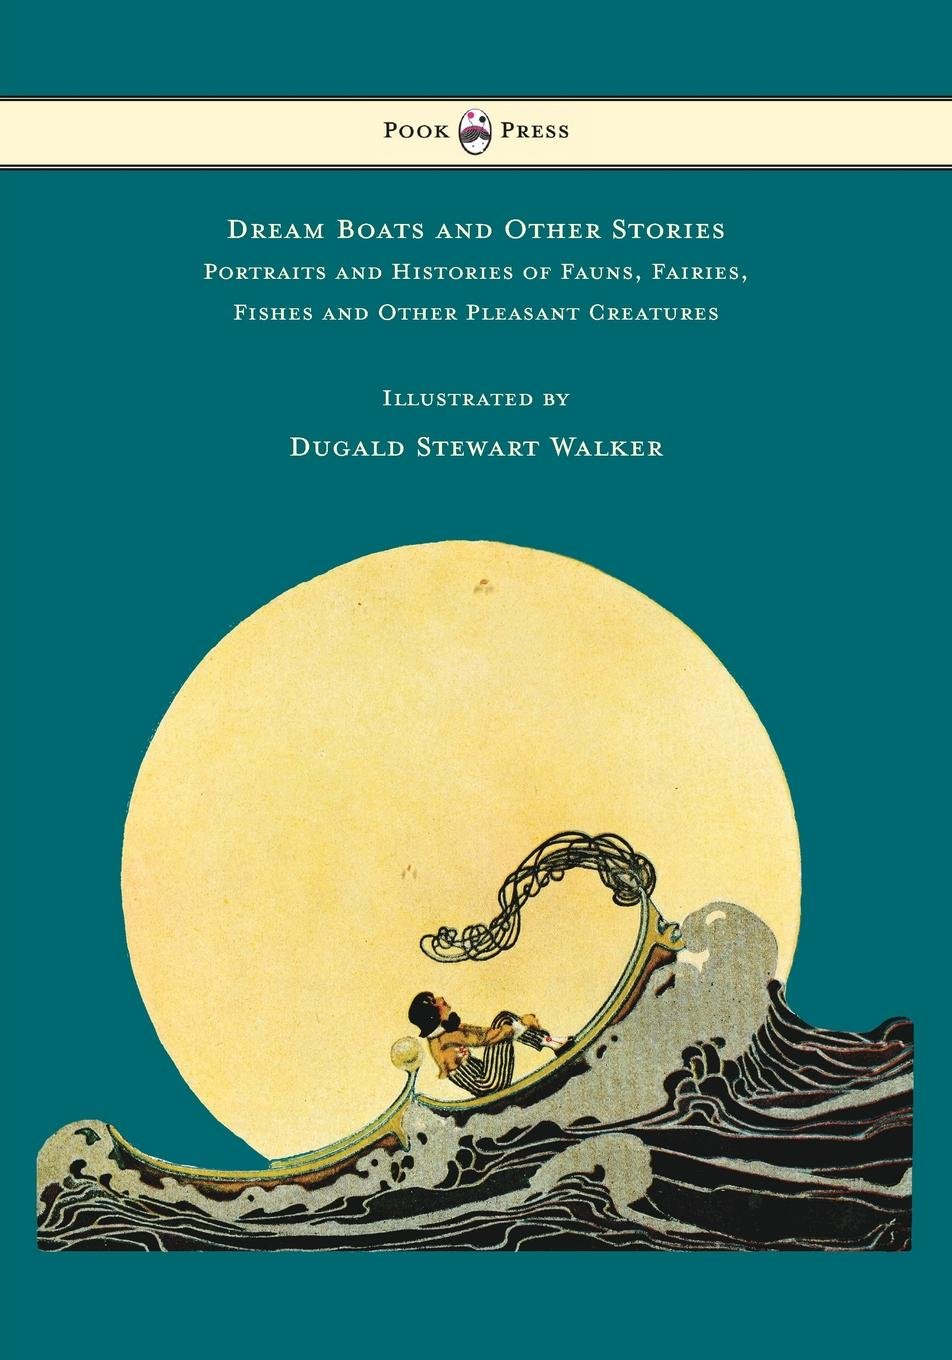 Dream Boats and Other Stories - Portraits and Histories of Fauns, Fairies, Fishes and Other Pleasant Creatures - Illustrated by Dugald Stewart Walker by Pook Press